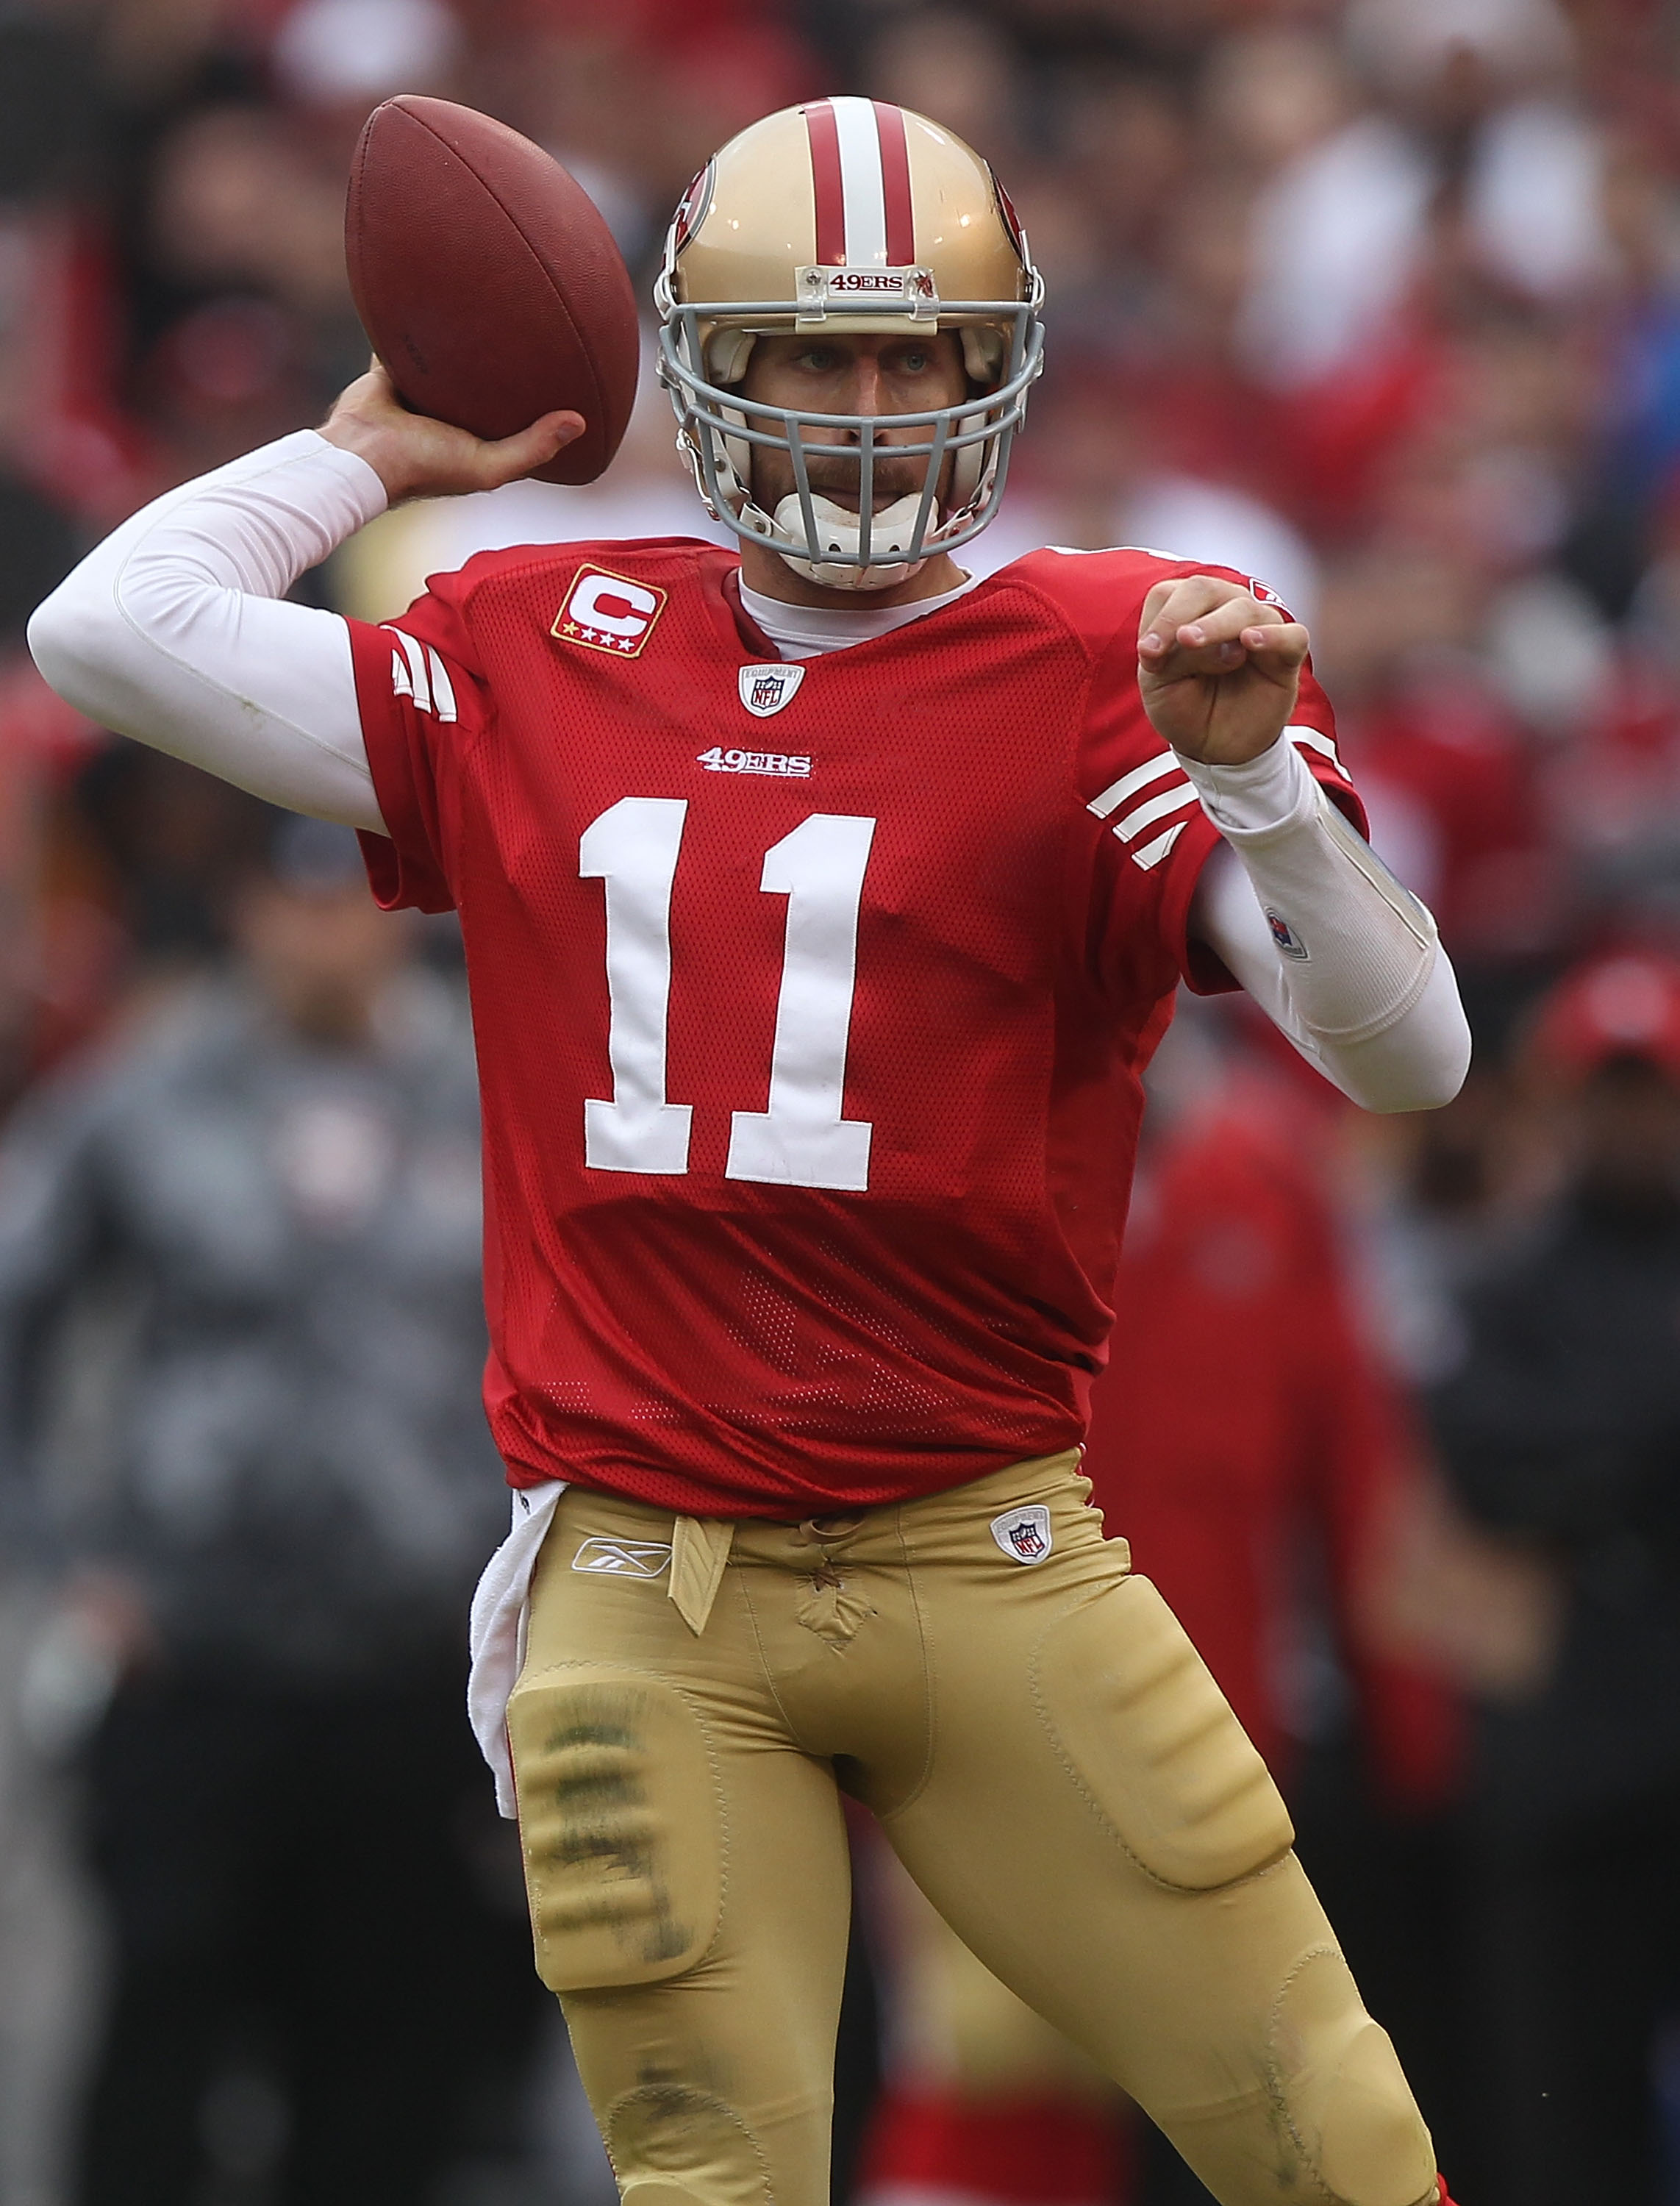 SAN FRANCISCO - DECEMBER 12:  Alex Smith #11 of the San Francisco 49ers passes against the Seattle Seahawks during an NFL game at Candlestick Park on December 12, 2010 in San Francisco, California.(Photo by Jed Jacobsohn/Getty Images)